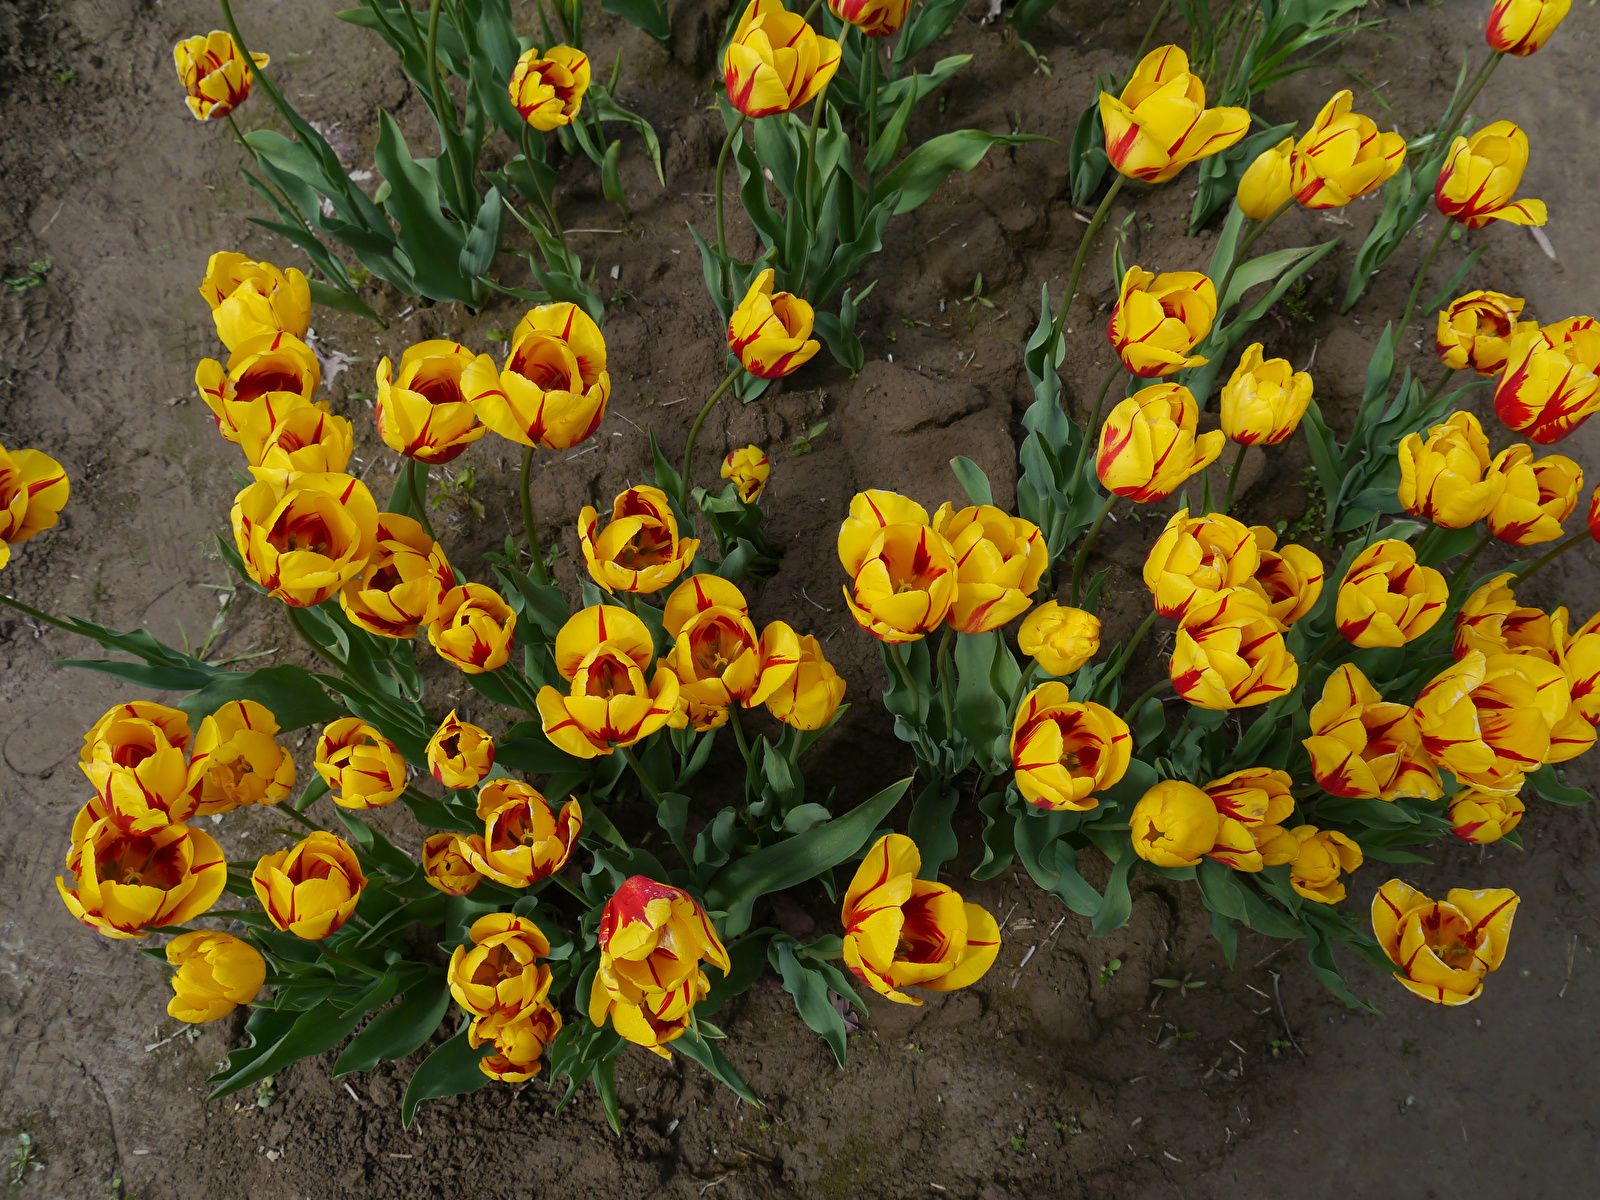 Pictures tulip Yellow Flowers From above 1600x1200 Tulips flower